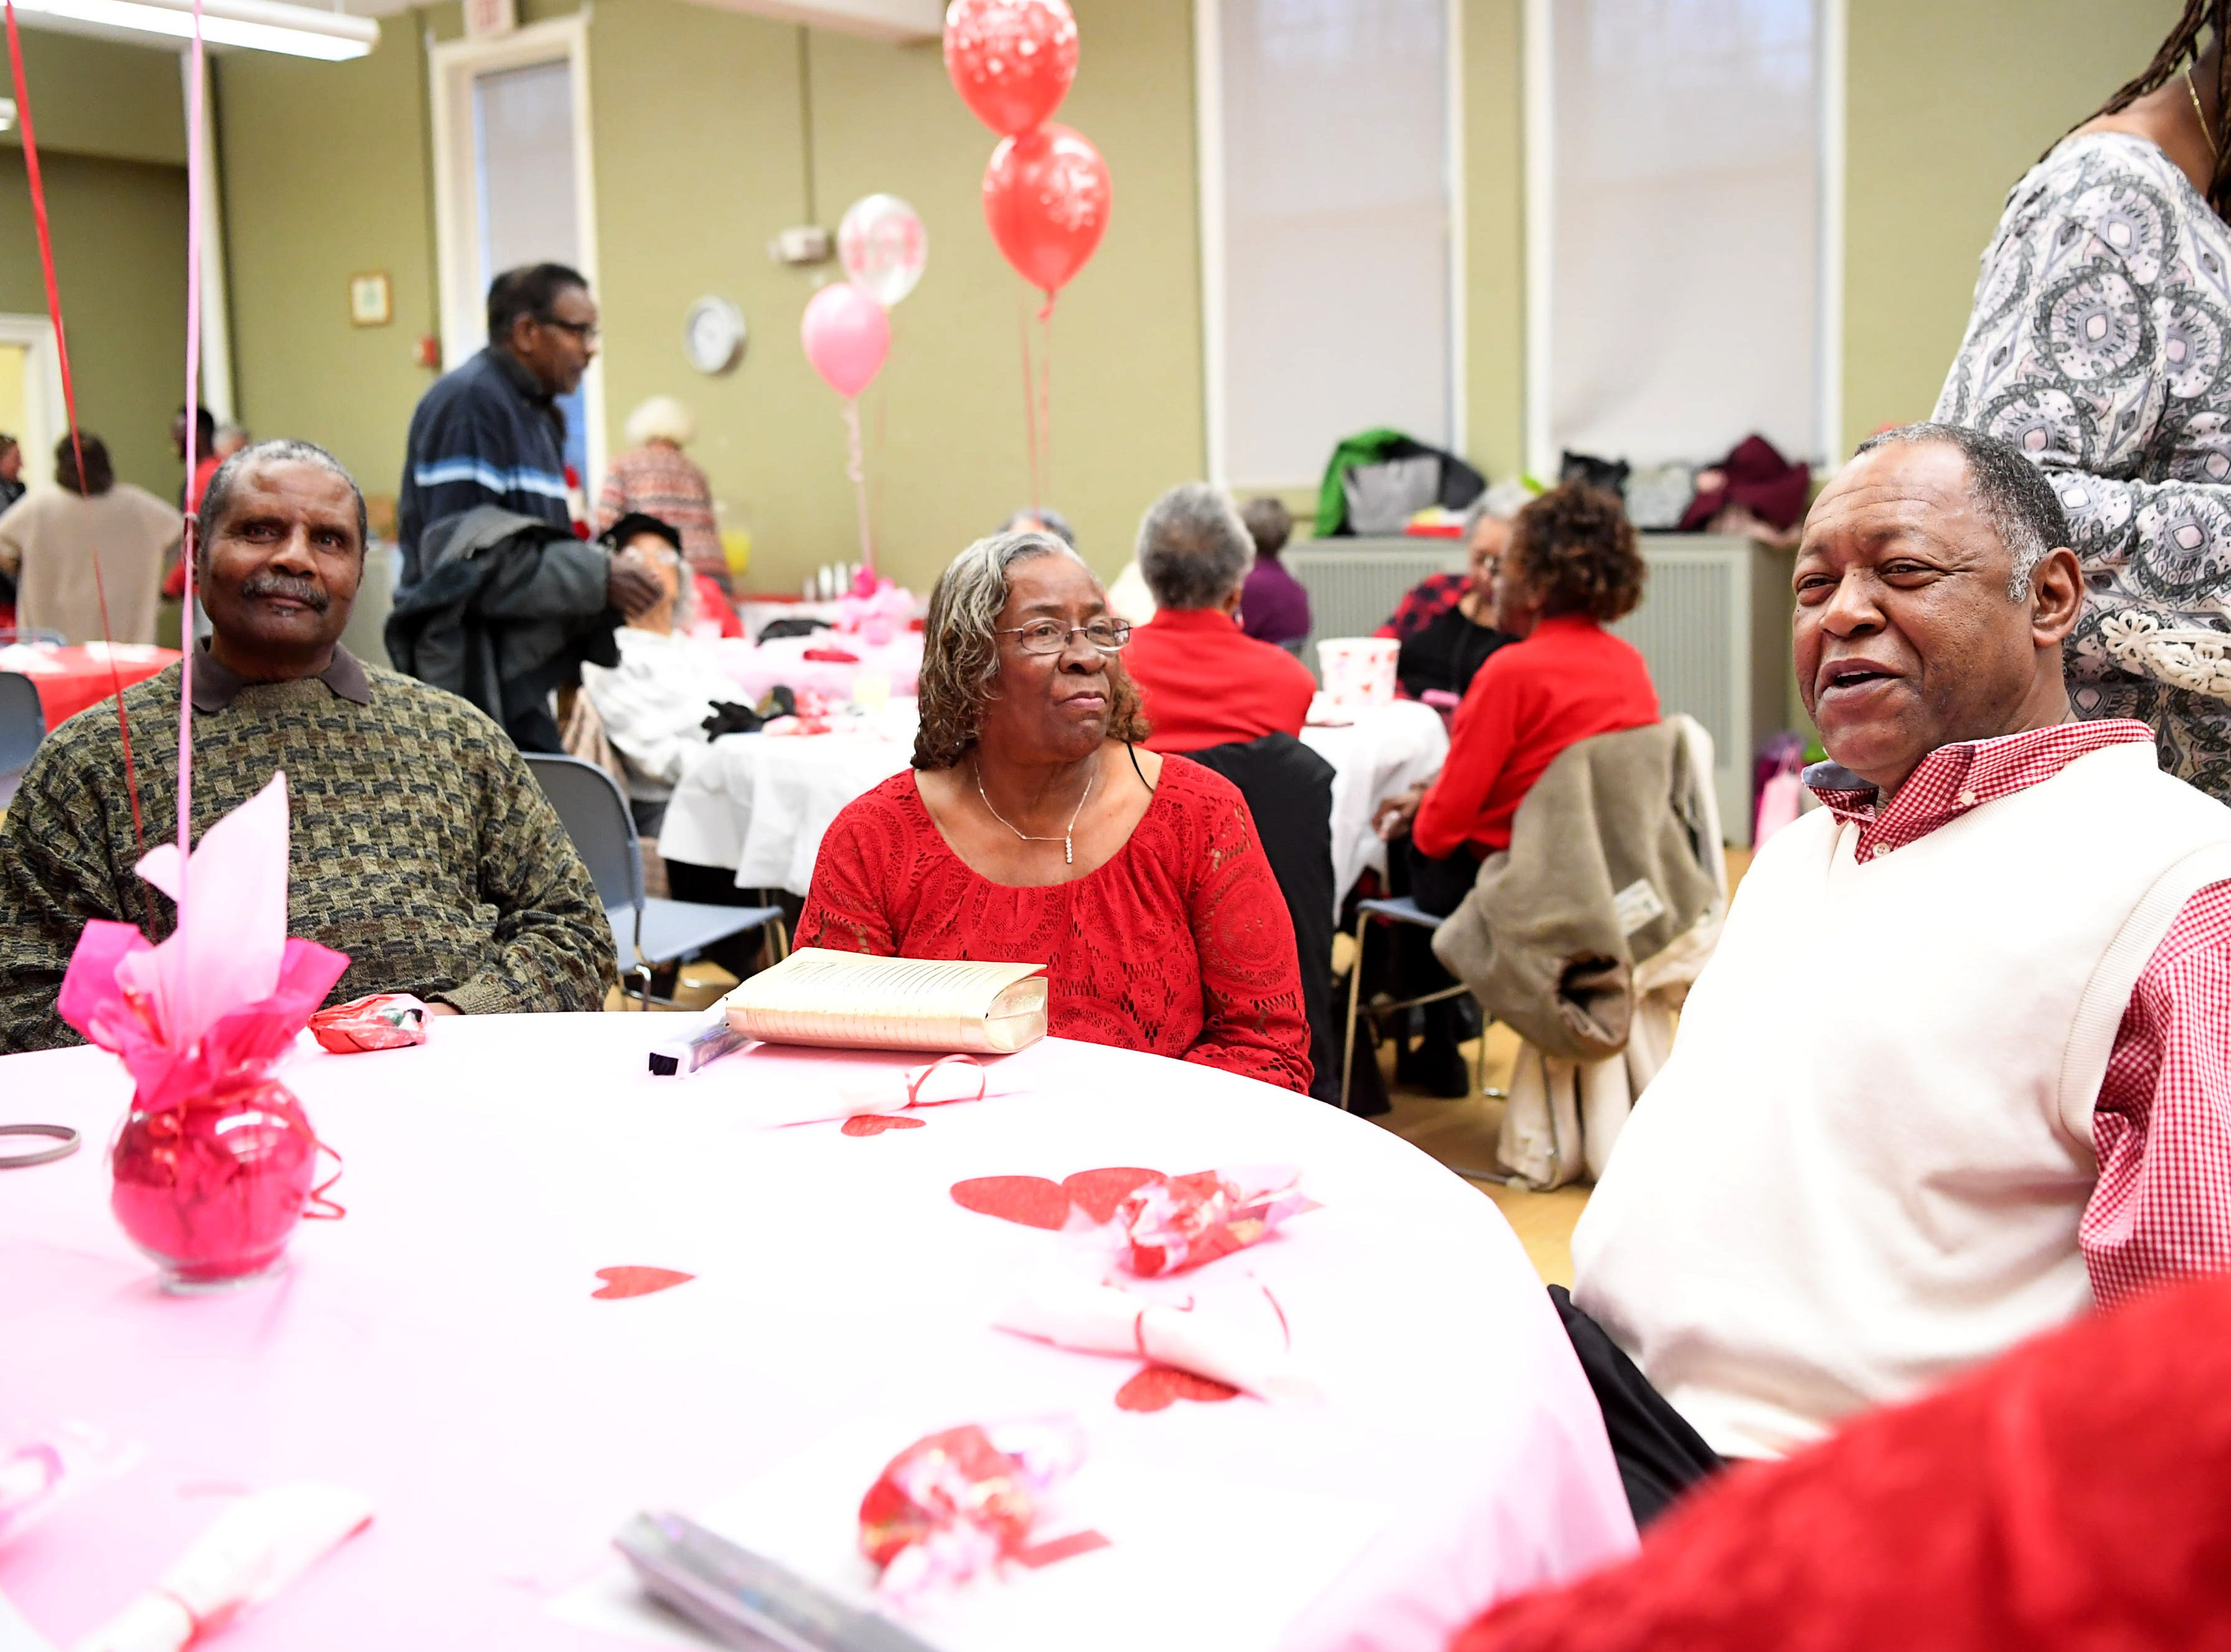 The District 9 senior club hosted a Valentine social with door prizes, dancing and food at the Stephens-Lee Recreation Center in Asheville Feb. 12, 2019.